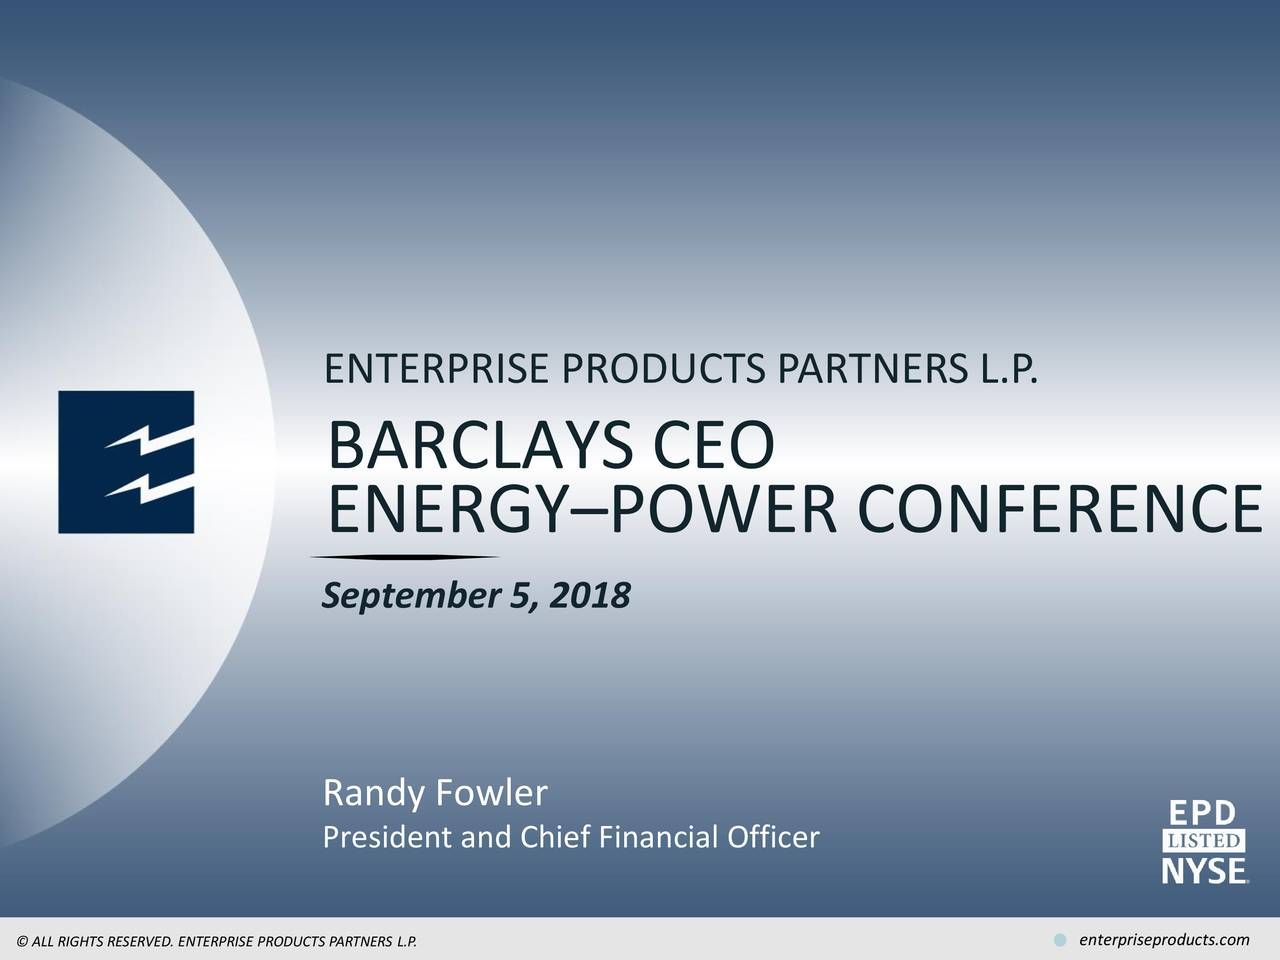 BARCLAYS CEO ENERGY–POWER CONFERENCE September 5, 2018 Randy Fowler President and Chief Financial Officer